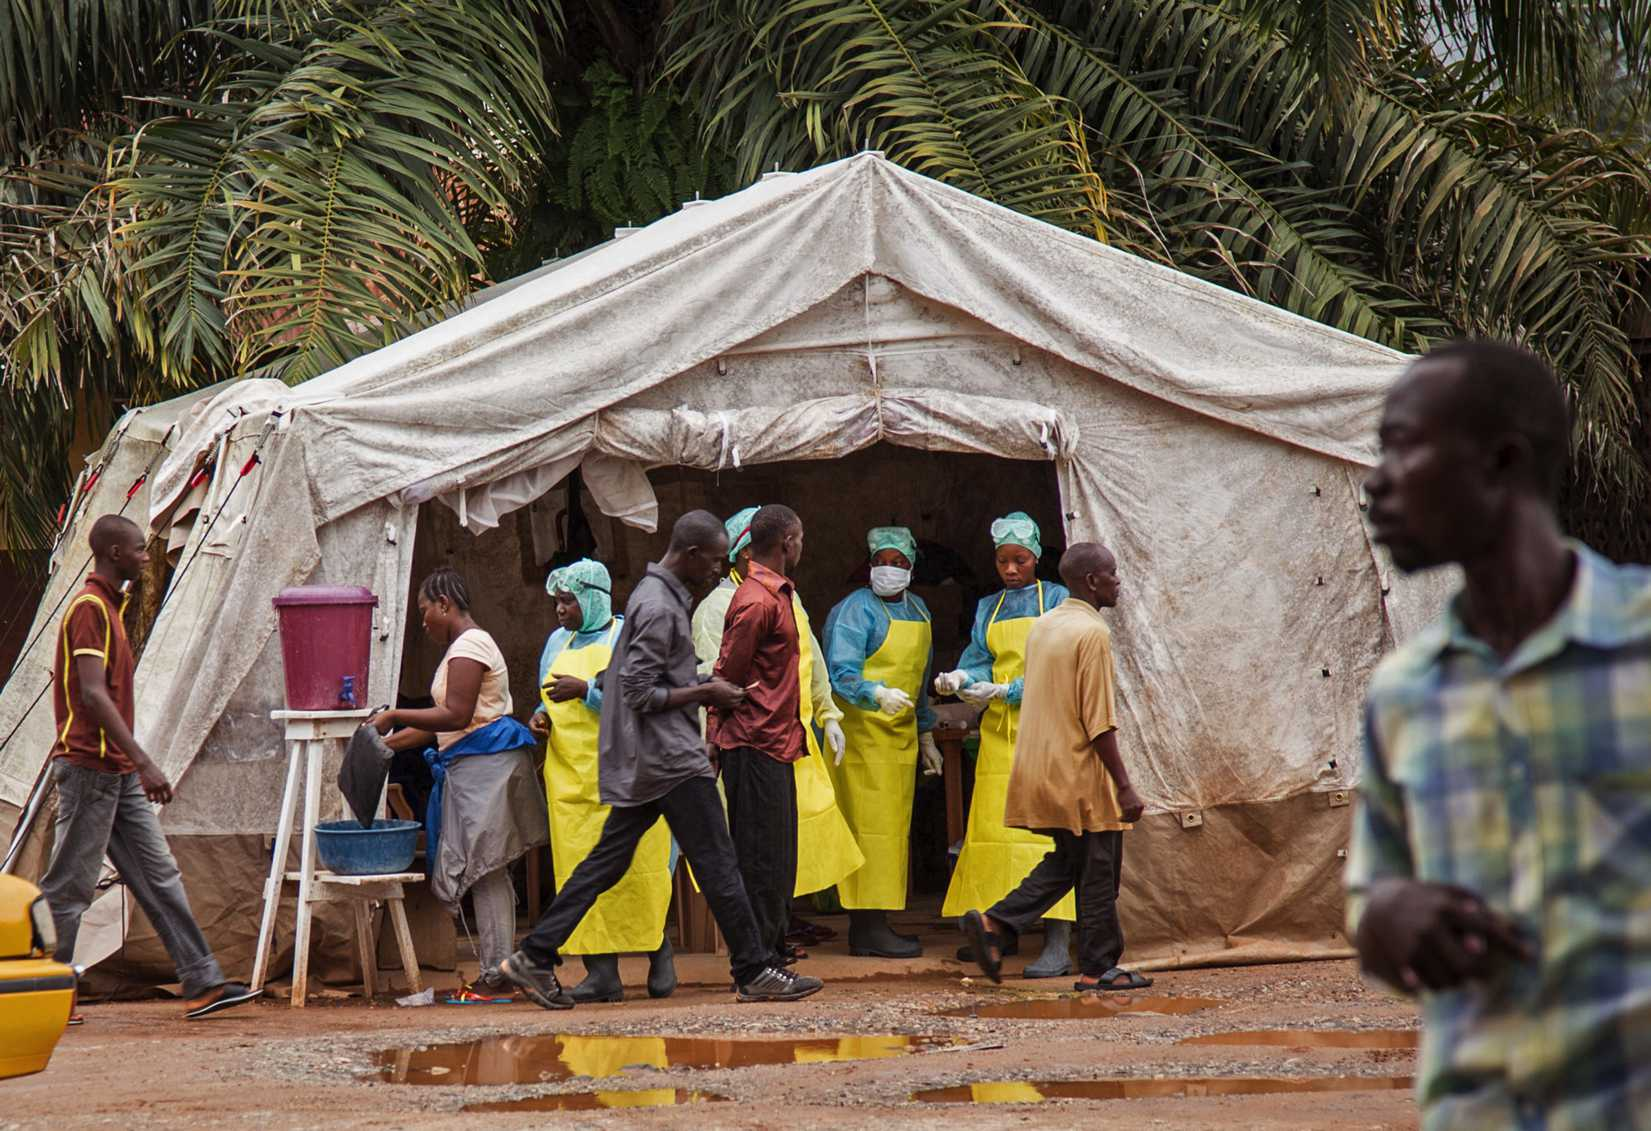 Health workers screen people for the deadly Ebola virus before entering the Kenema Government Hospital in Kenema, 300 kilometers, (186 miles) from the capital city of Freetown, Sierra Leone on August 9, 2014.